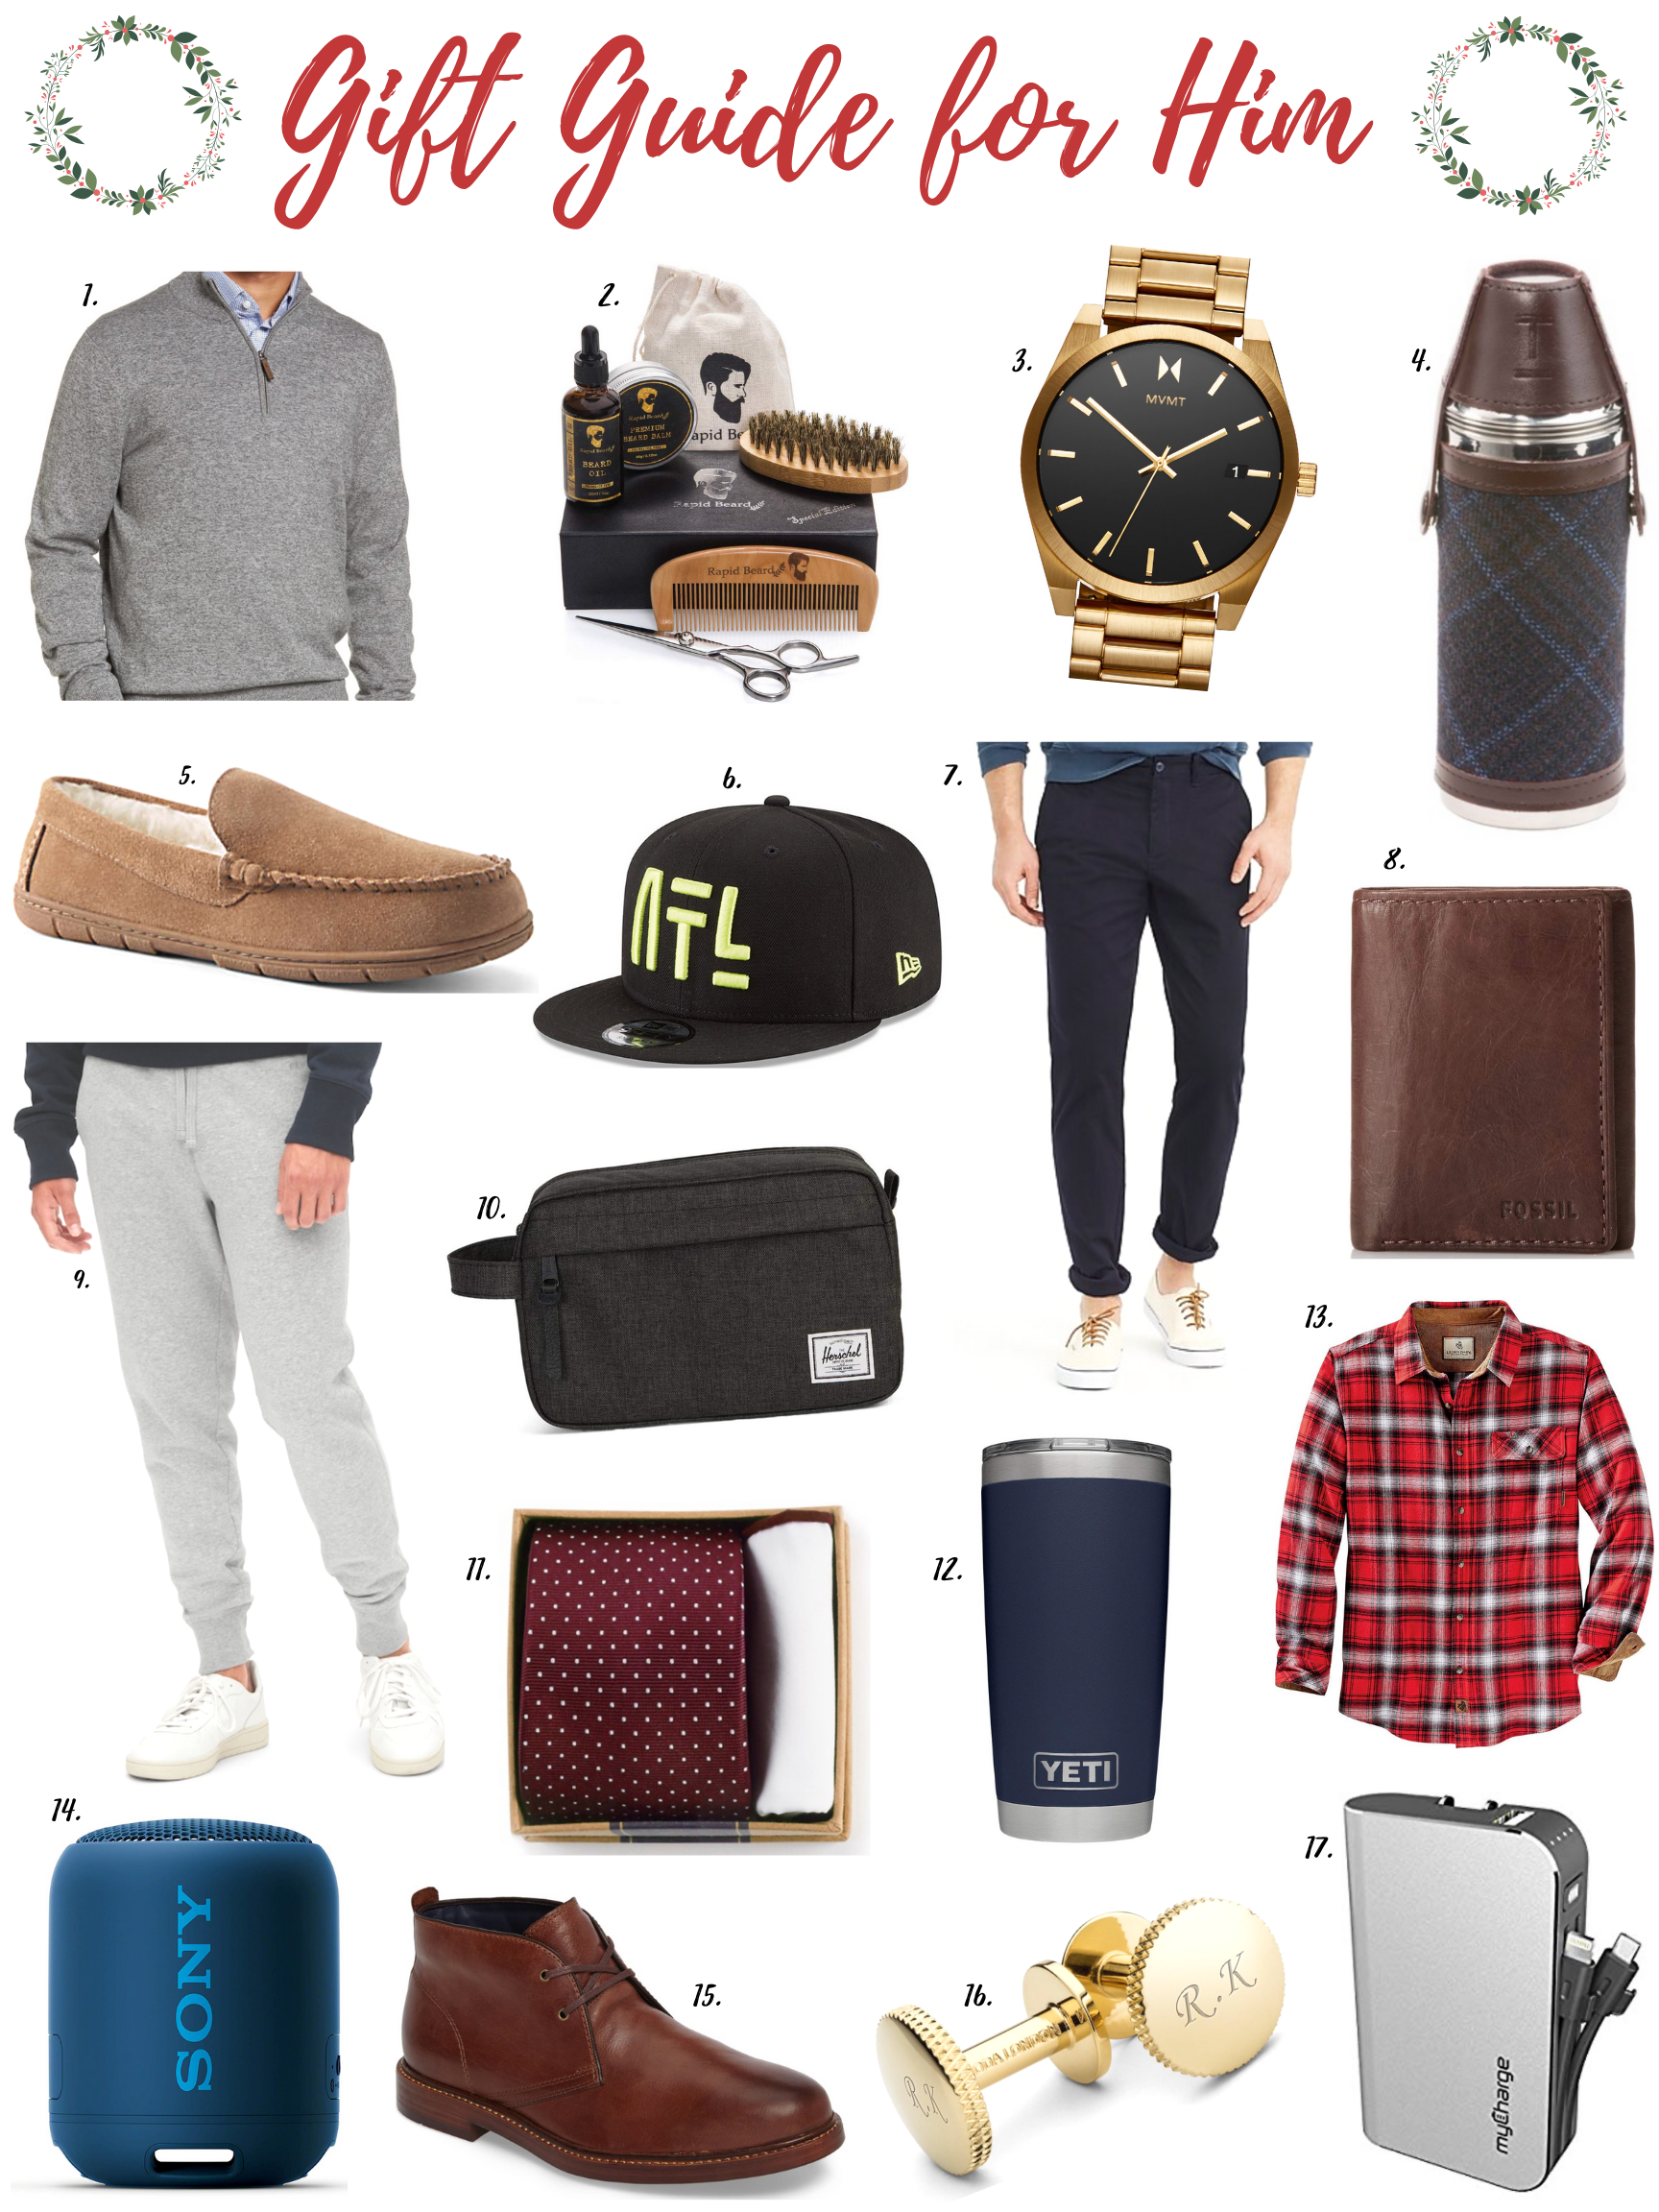 HOLIDAY GIFT-GUIDE FOR HIM